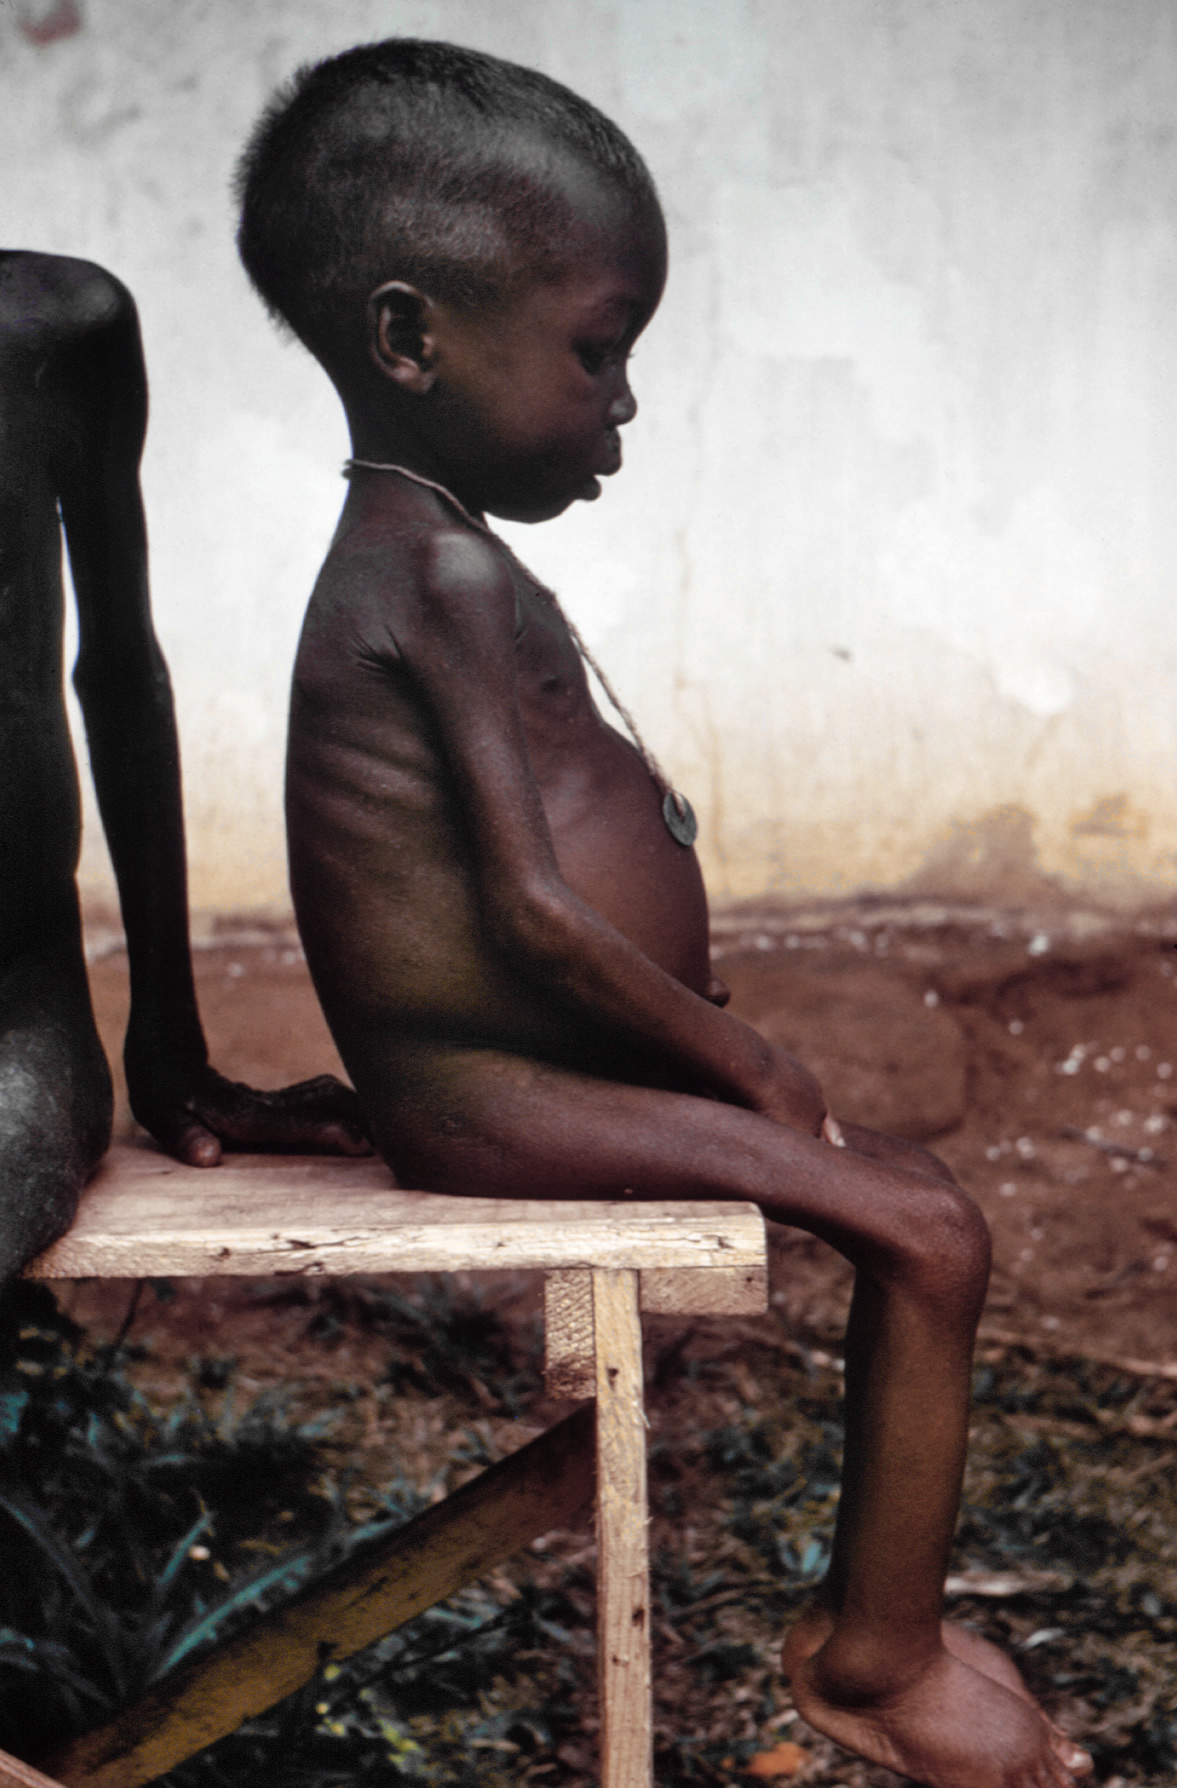 http://upload.wikimedia.org/wikipedia/commons/4/47/Starved_girl.jpg